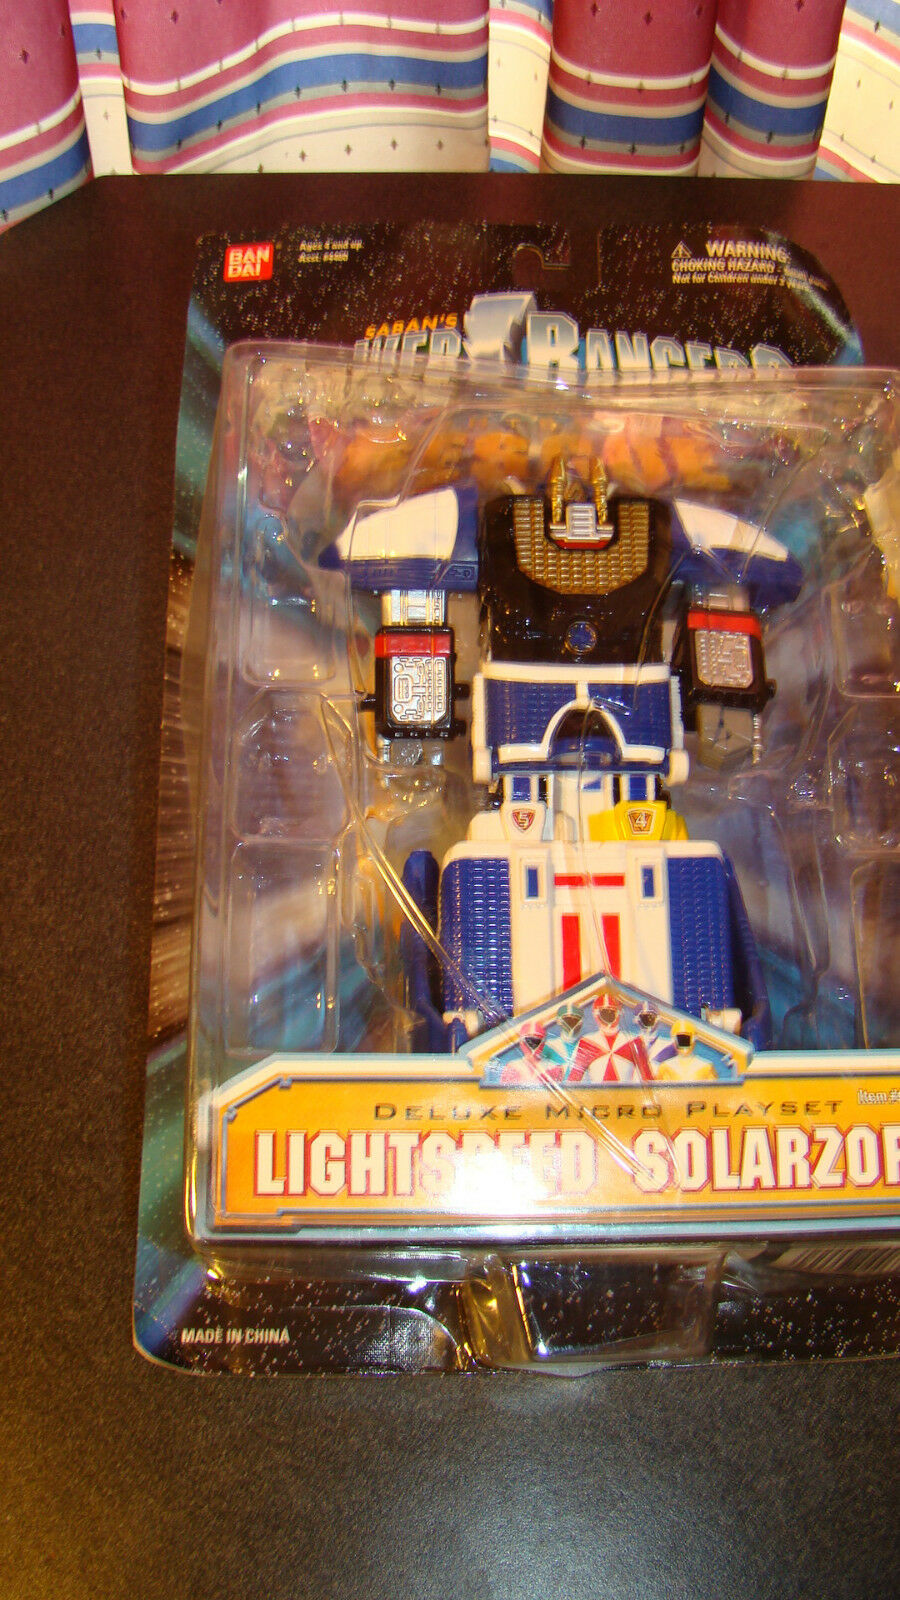 Power Rangers Lightspeed Rescue Deluxe Microplay Set Lightspeed Solarzord  RARE